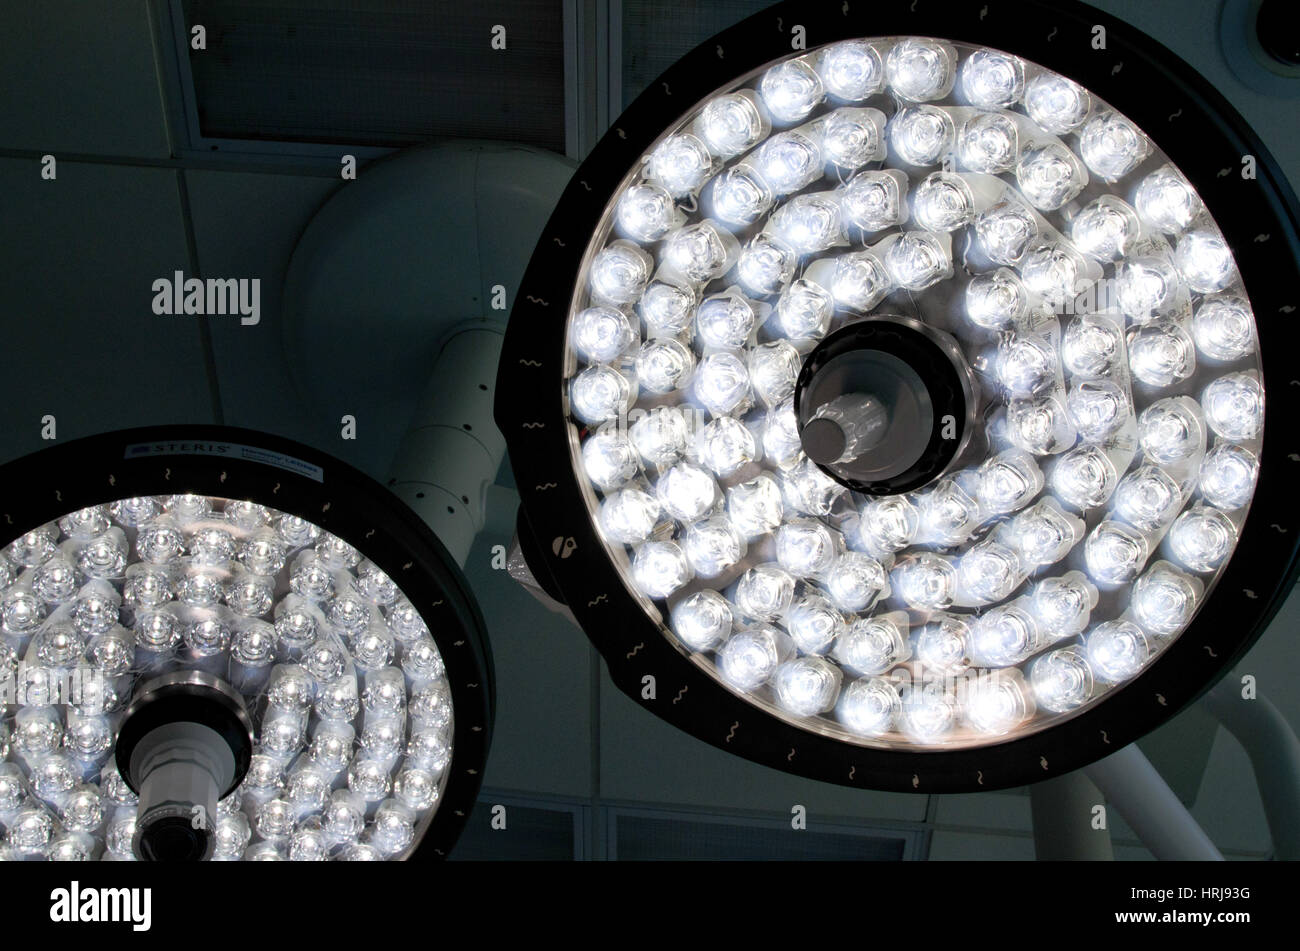 Surgical Lights Stock Photos & Surgical Lights Stock Images